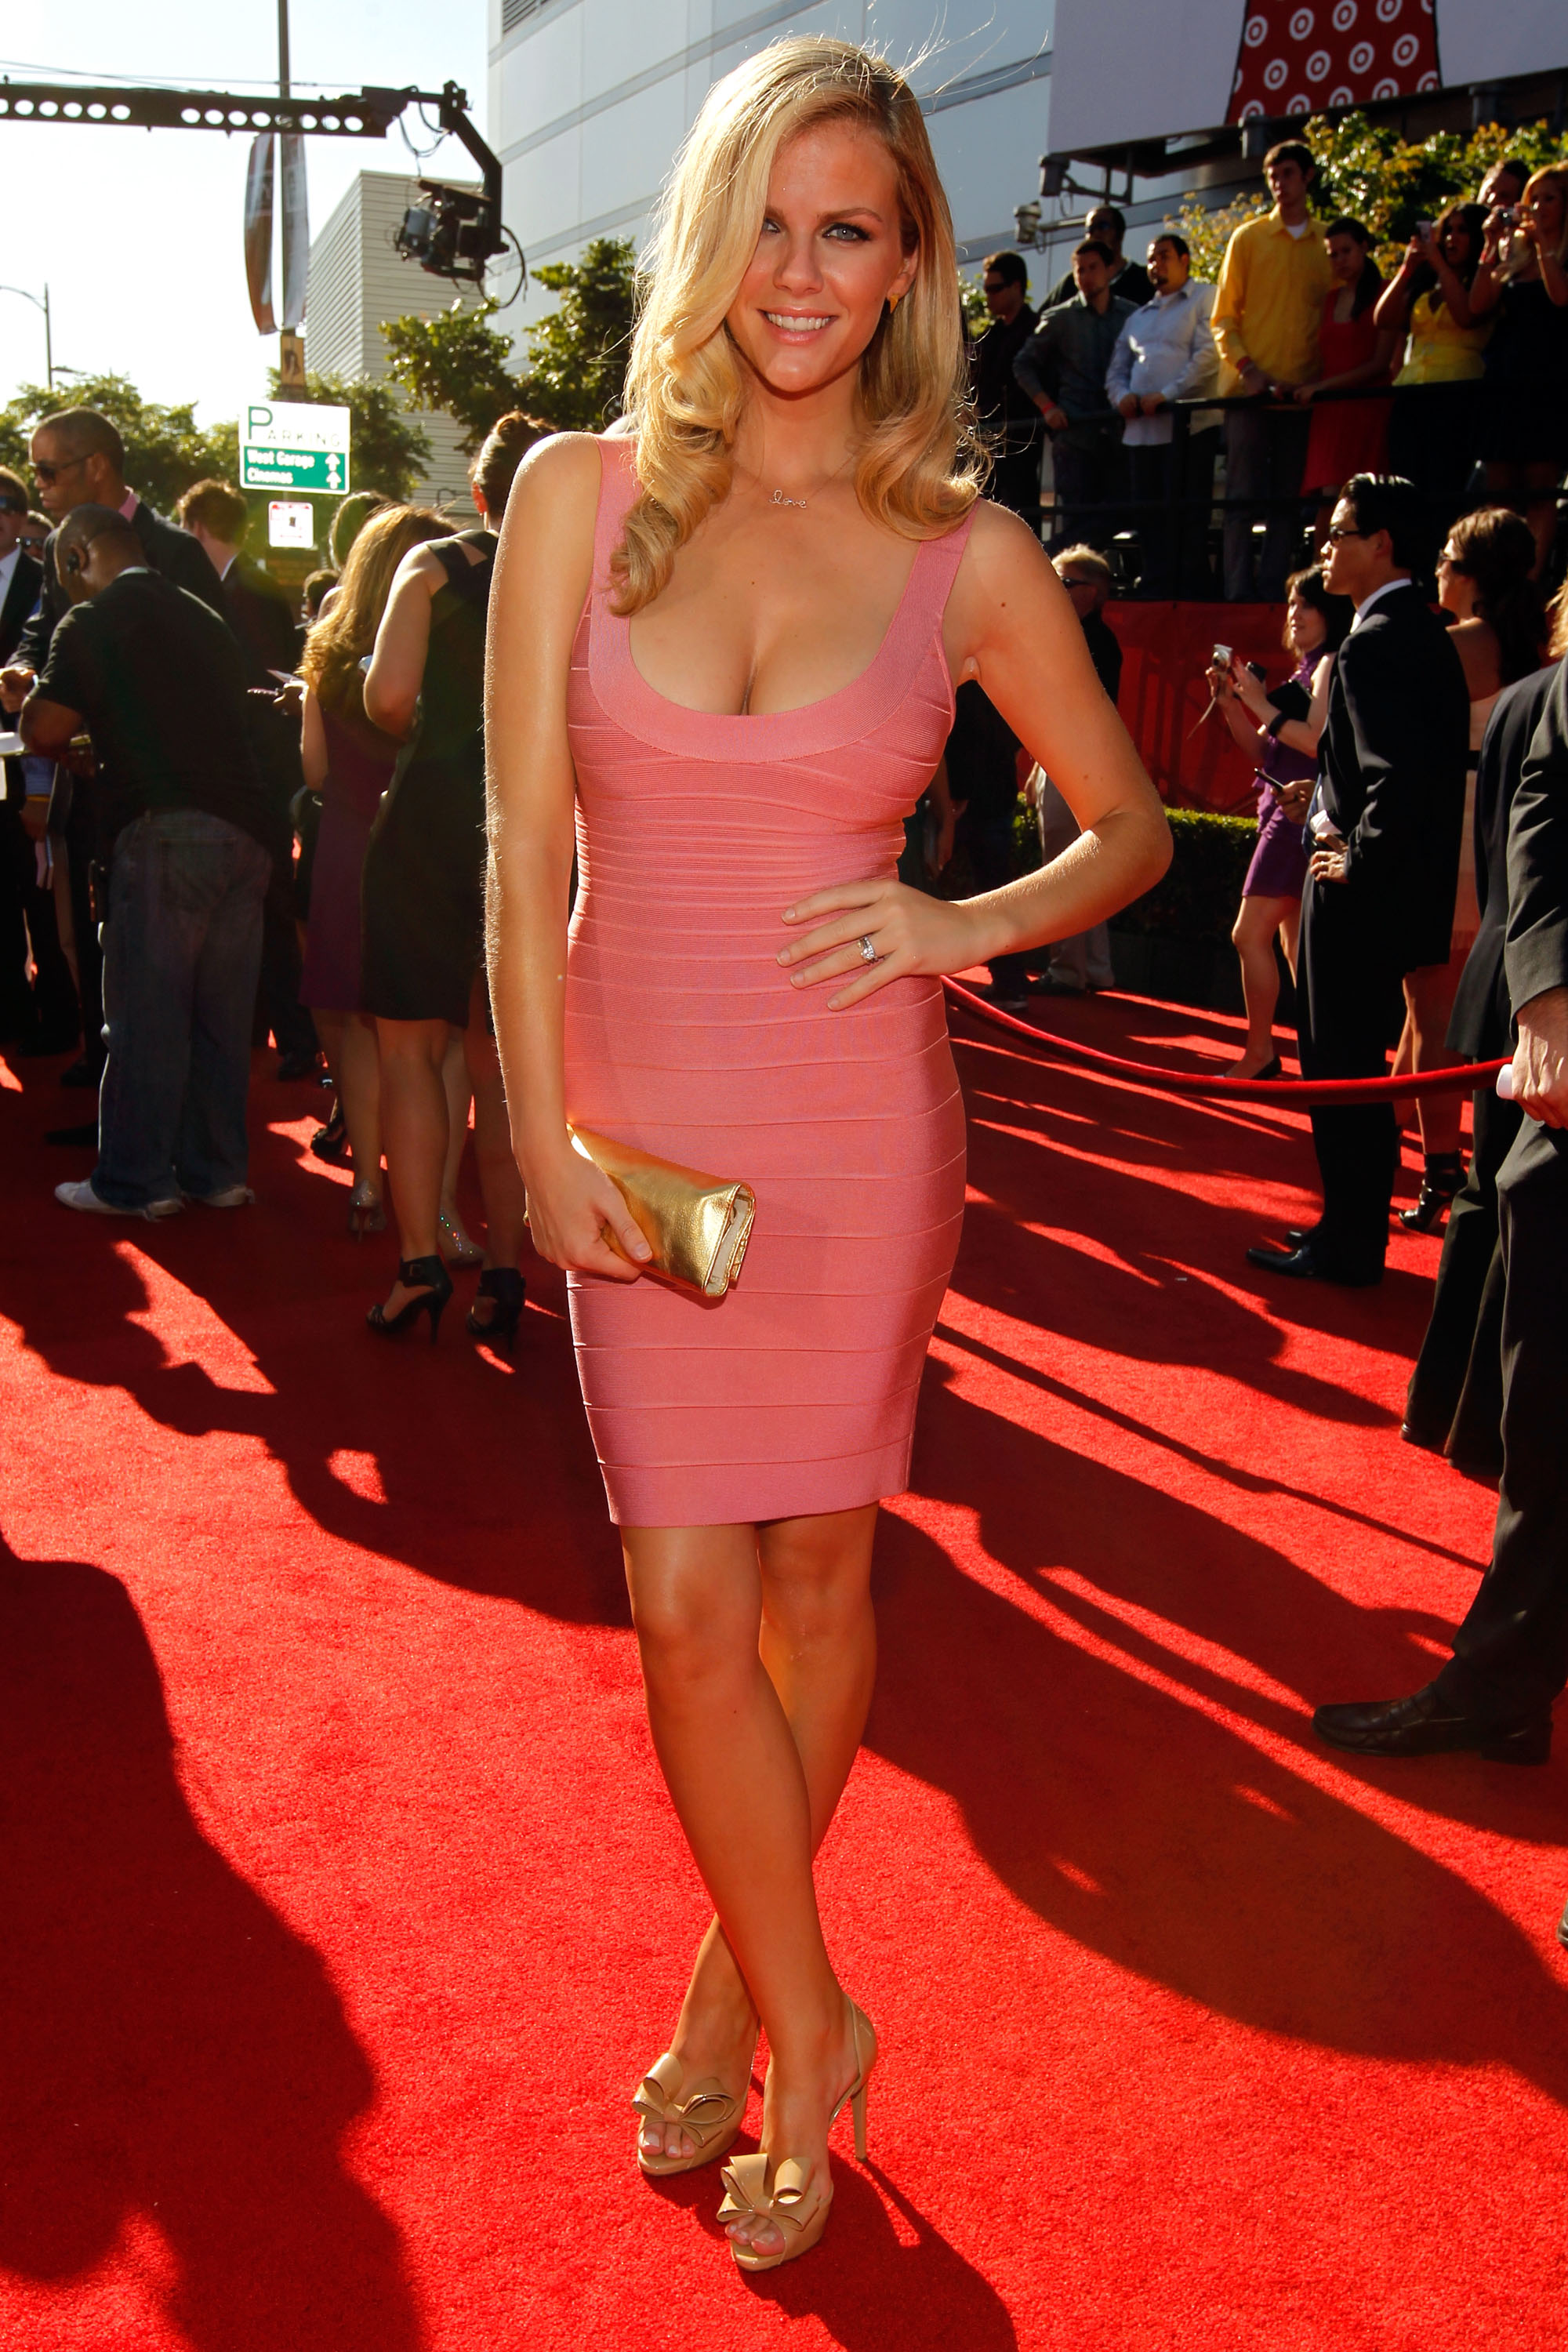 99951_Brooklyn_Decker_ESPY_Awards_23_122_439lo.jpg